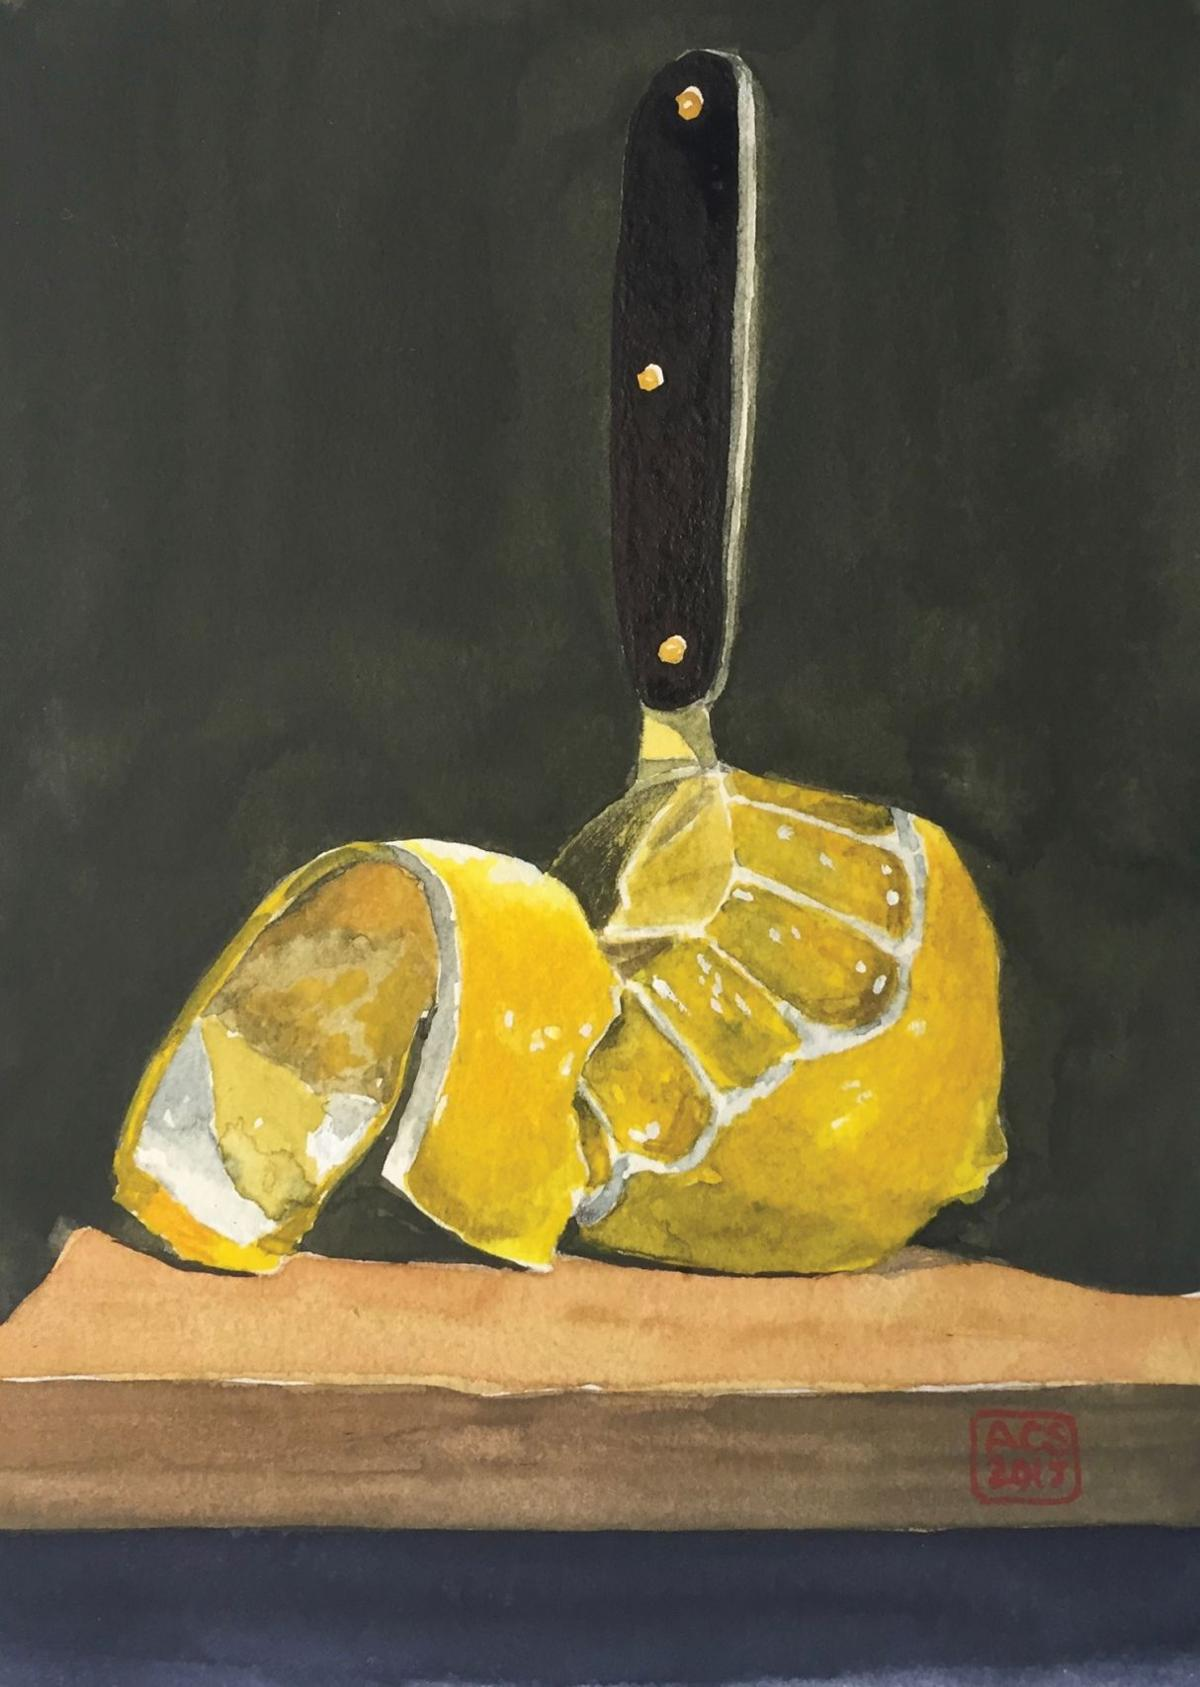 Lemons and knife